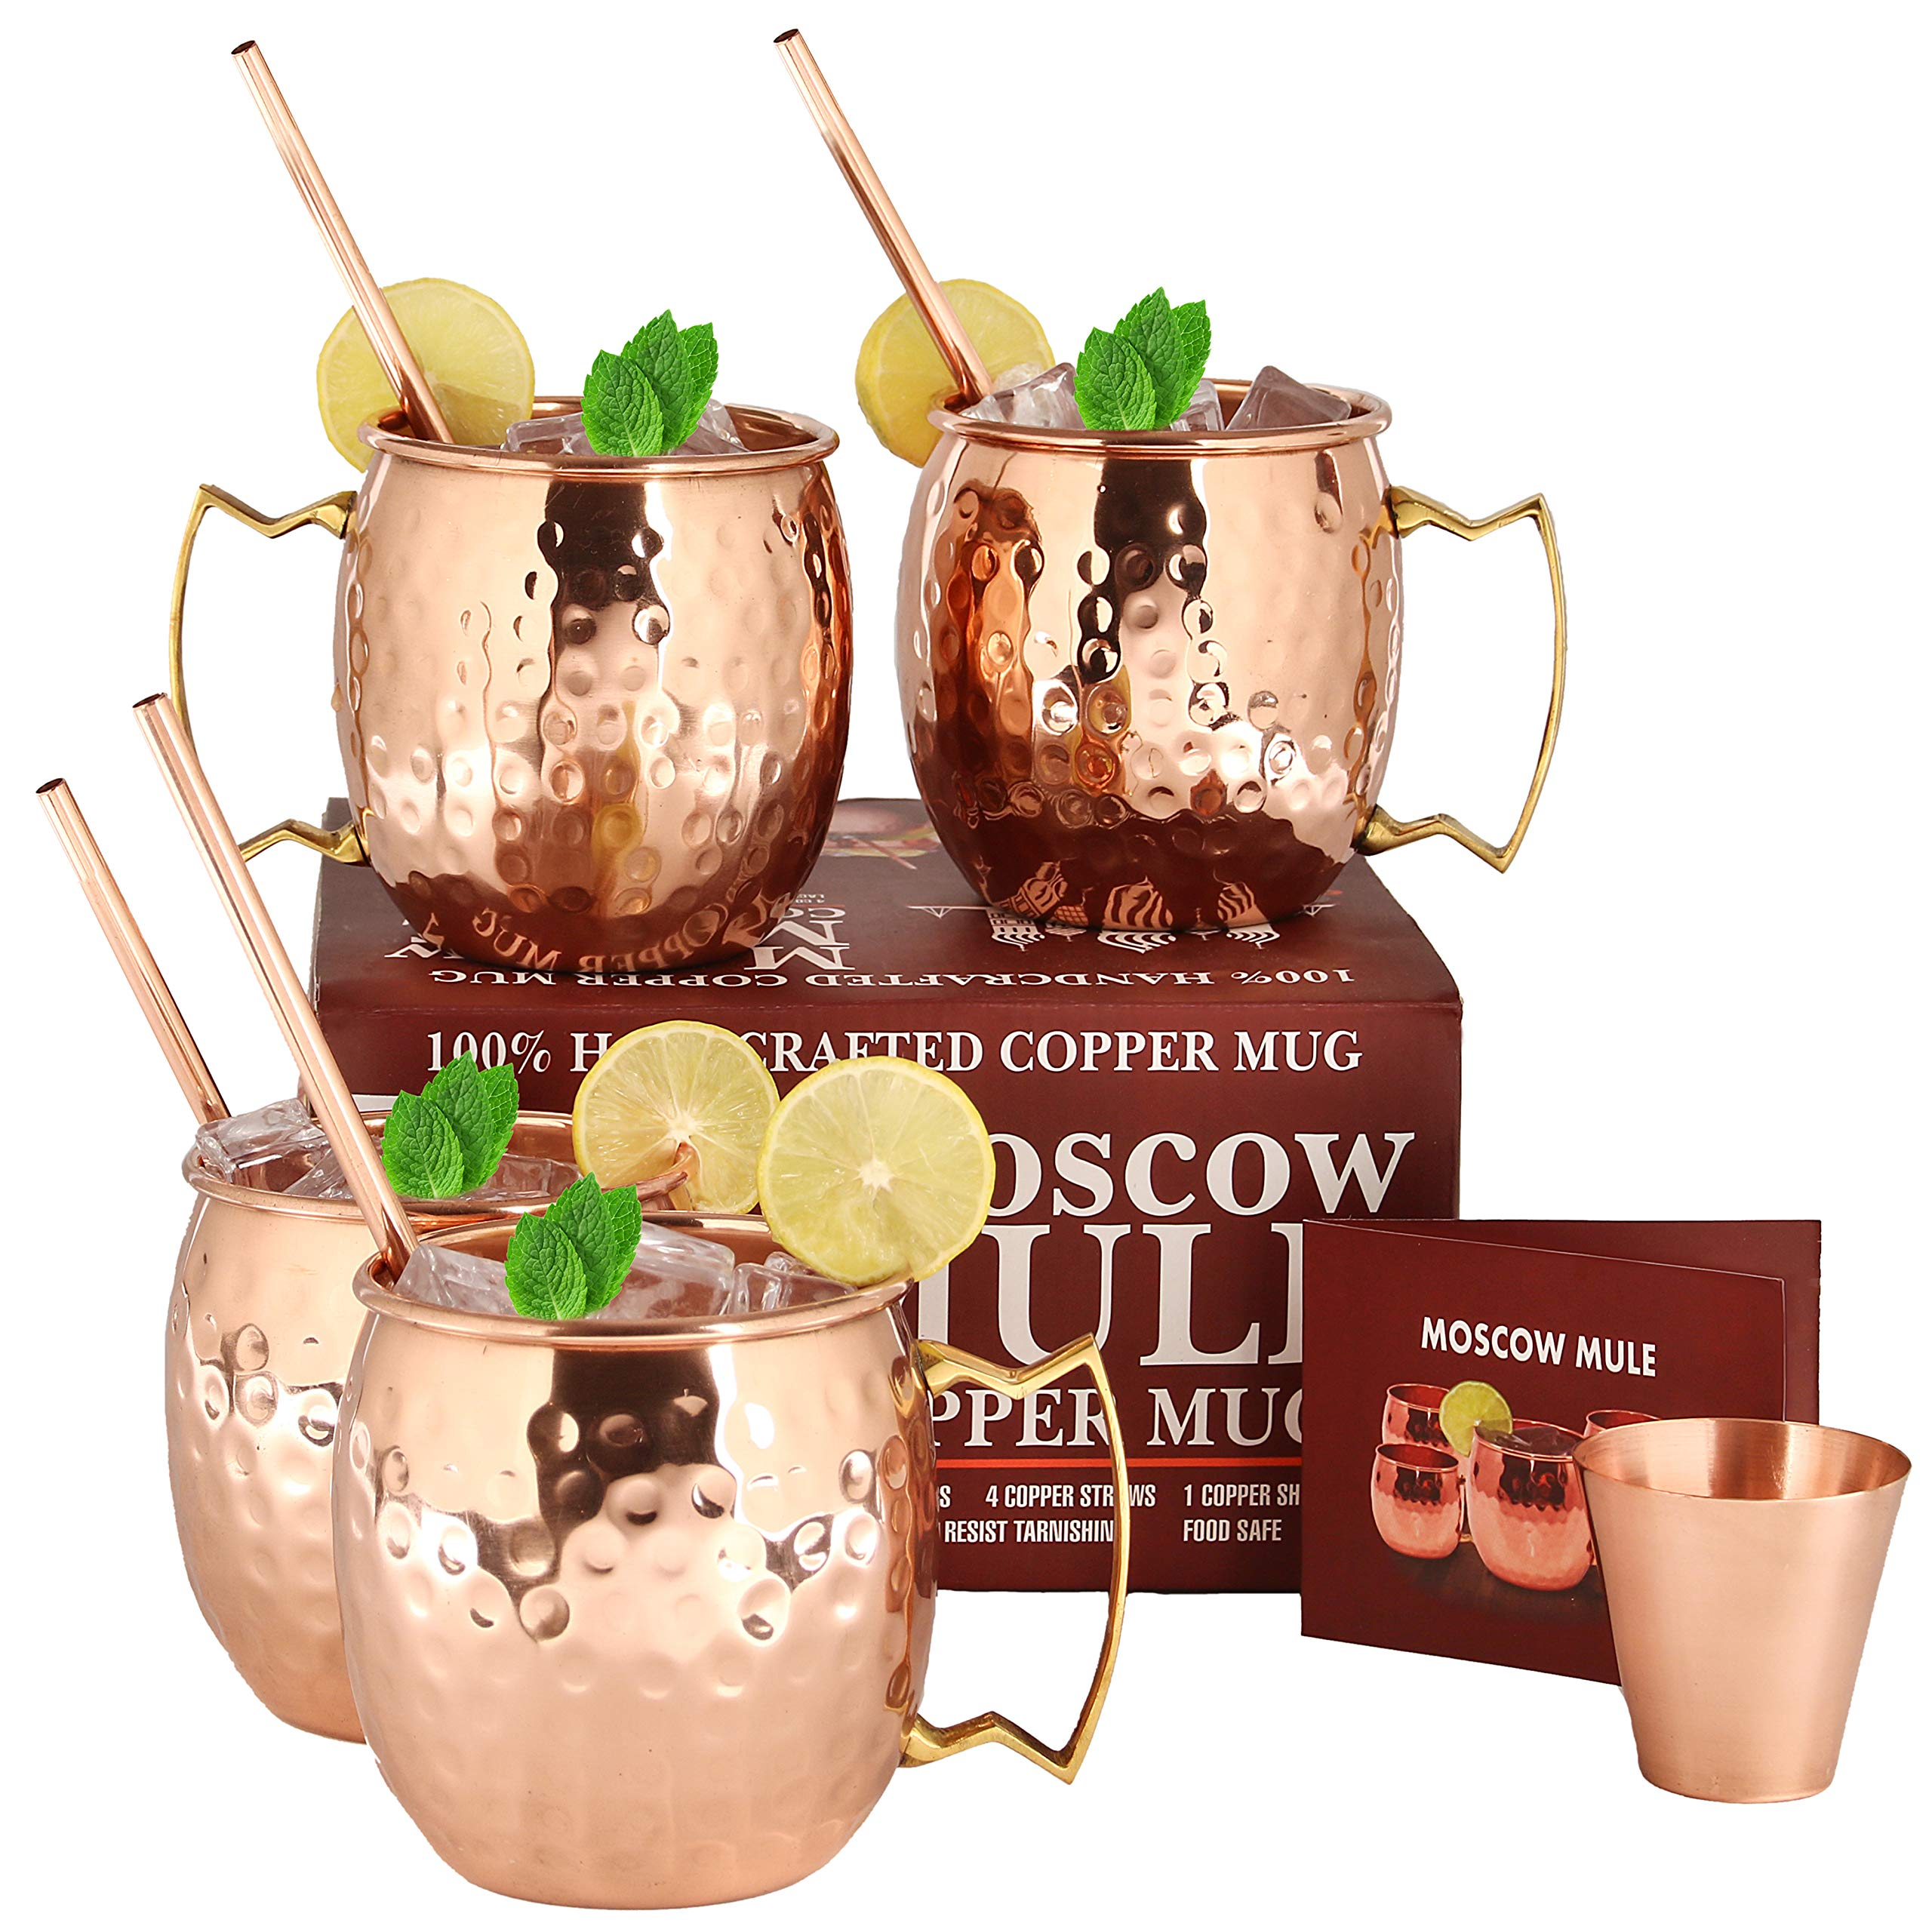 Moscow Mule Copper Mugs - Set of 4-100% HANDCRAFTED Food Safe Pure Solid Copper Mugs - 16 oz Gift Set with BONUS: Highest Quality 4 Cocktail Copper Straws and 1 Shot Glass with Recipe Booklet! by A29